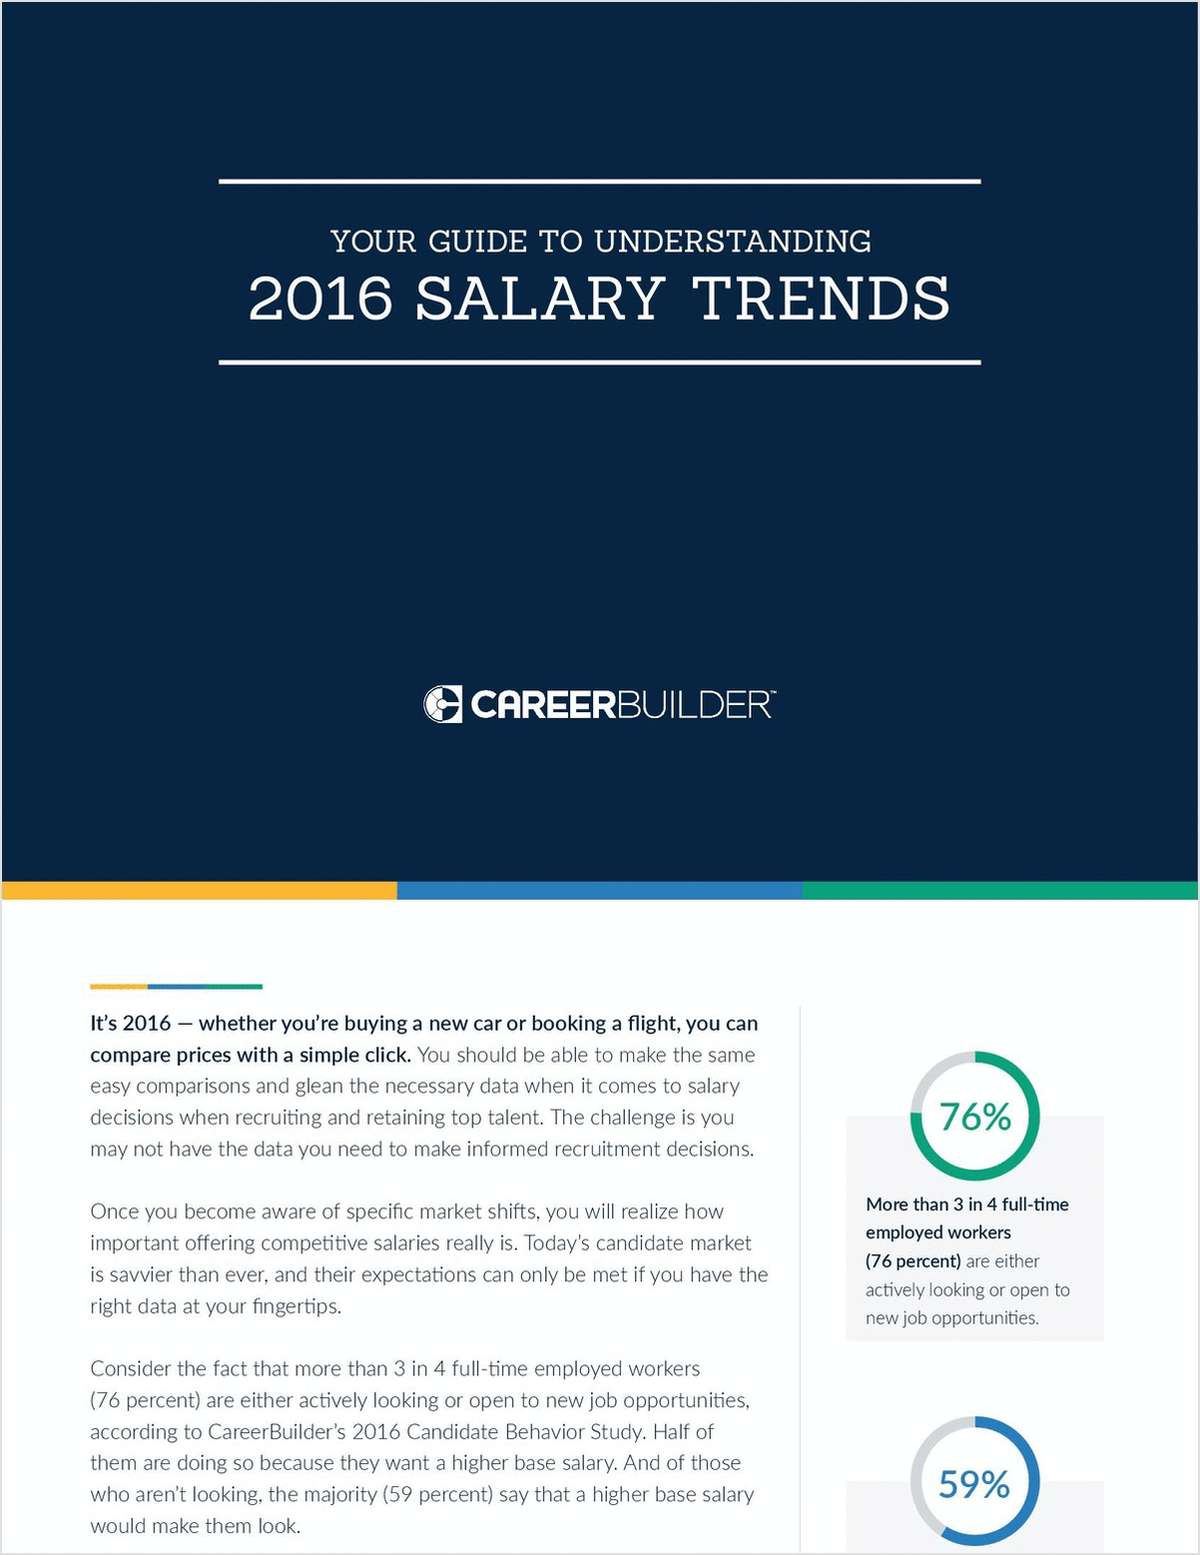 Your Guide to Understanding 2016 Salary Trends